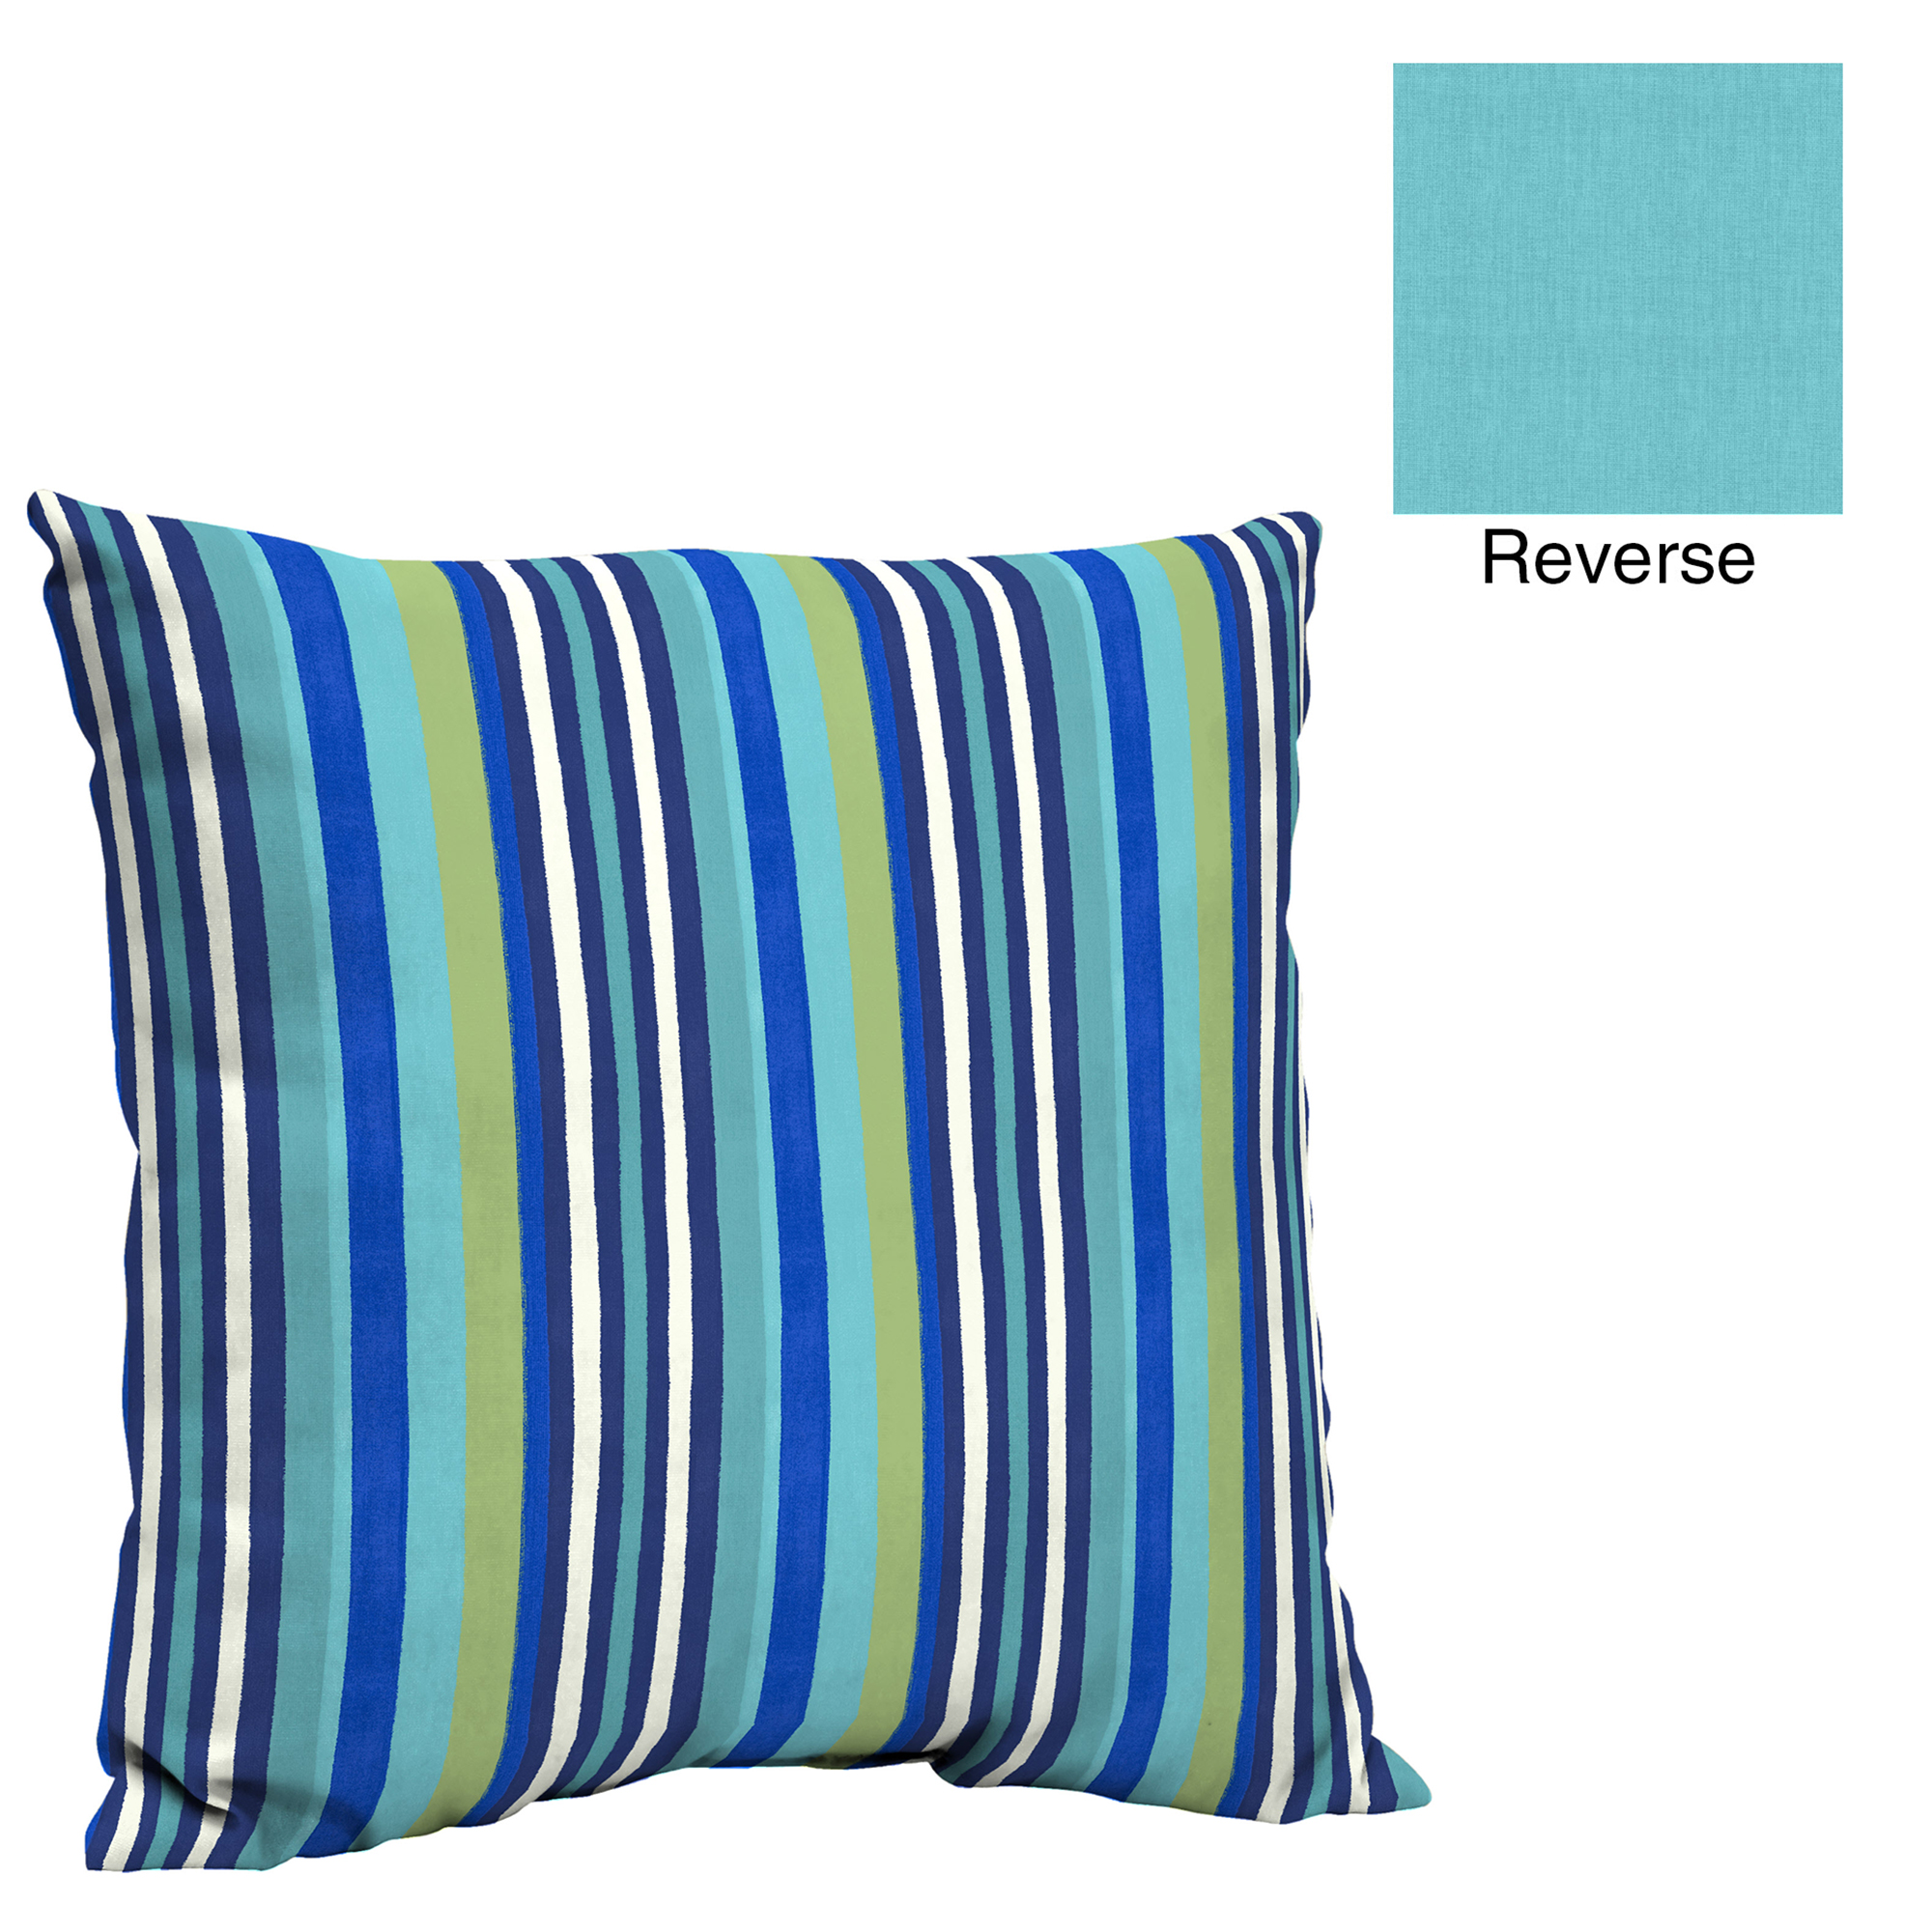 Mainstays Turquoise Stripe 21 x 21 in. Outdoor Pillow Back Cushion